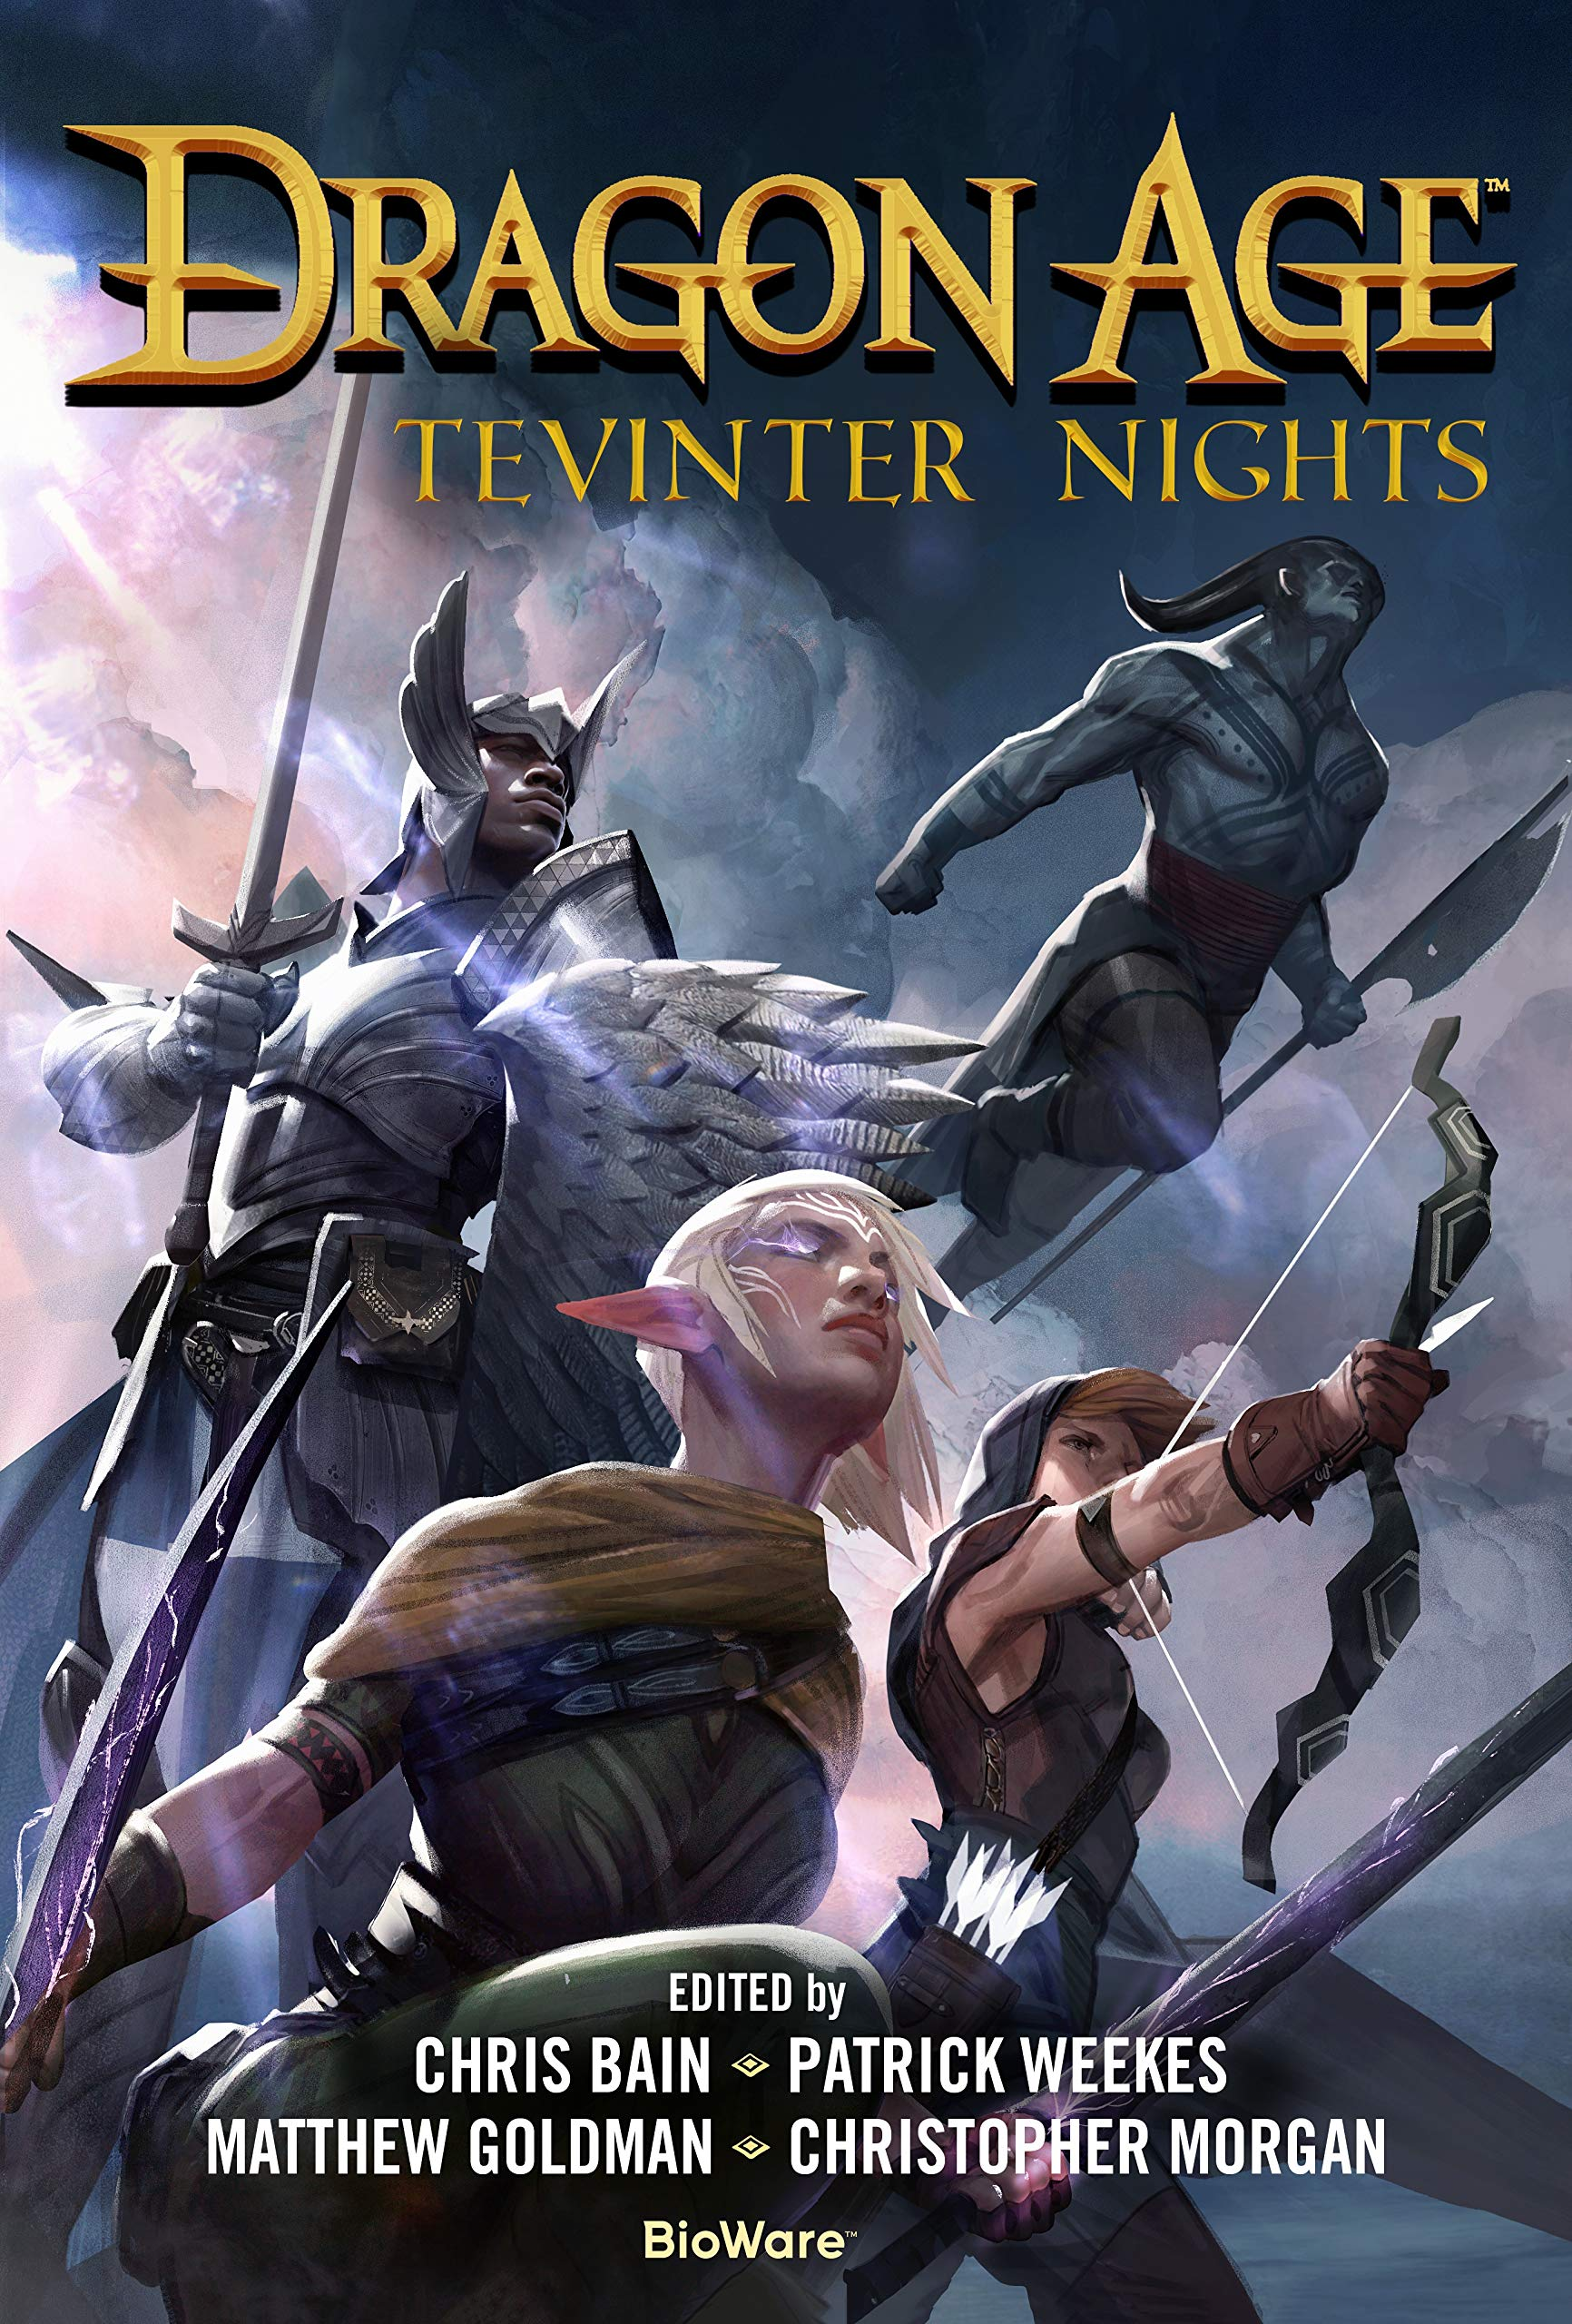 Dragon Age: Tevinter Nights: Weekes: 9780765337221: Amazon.com: Books